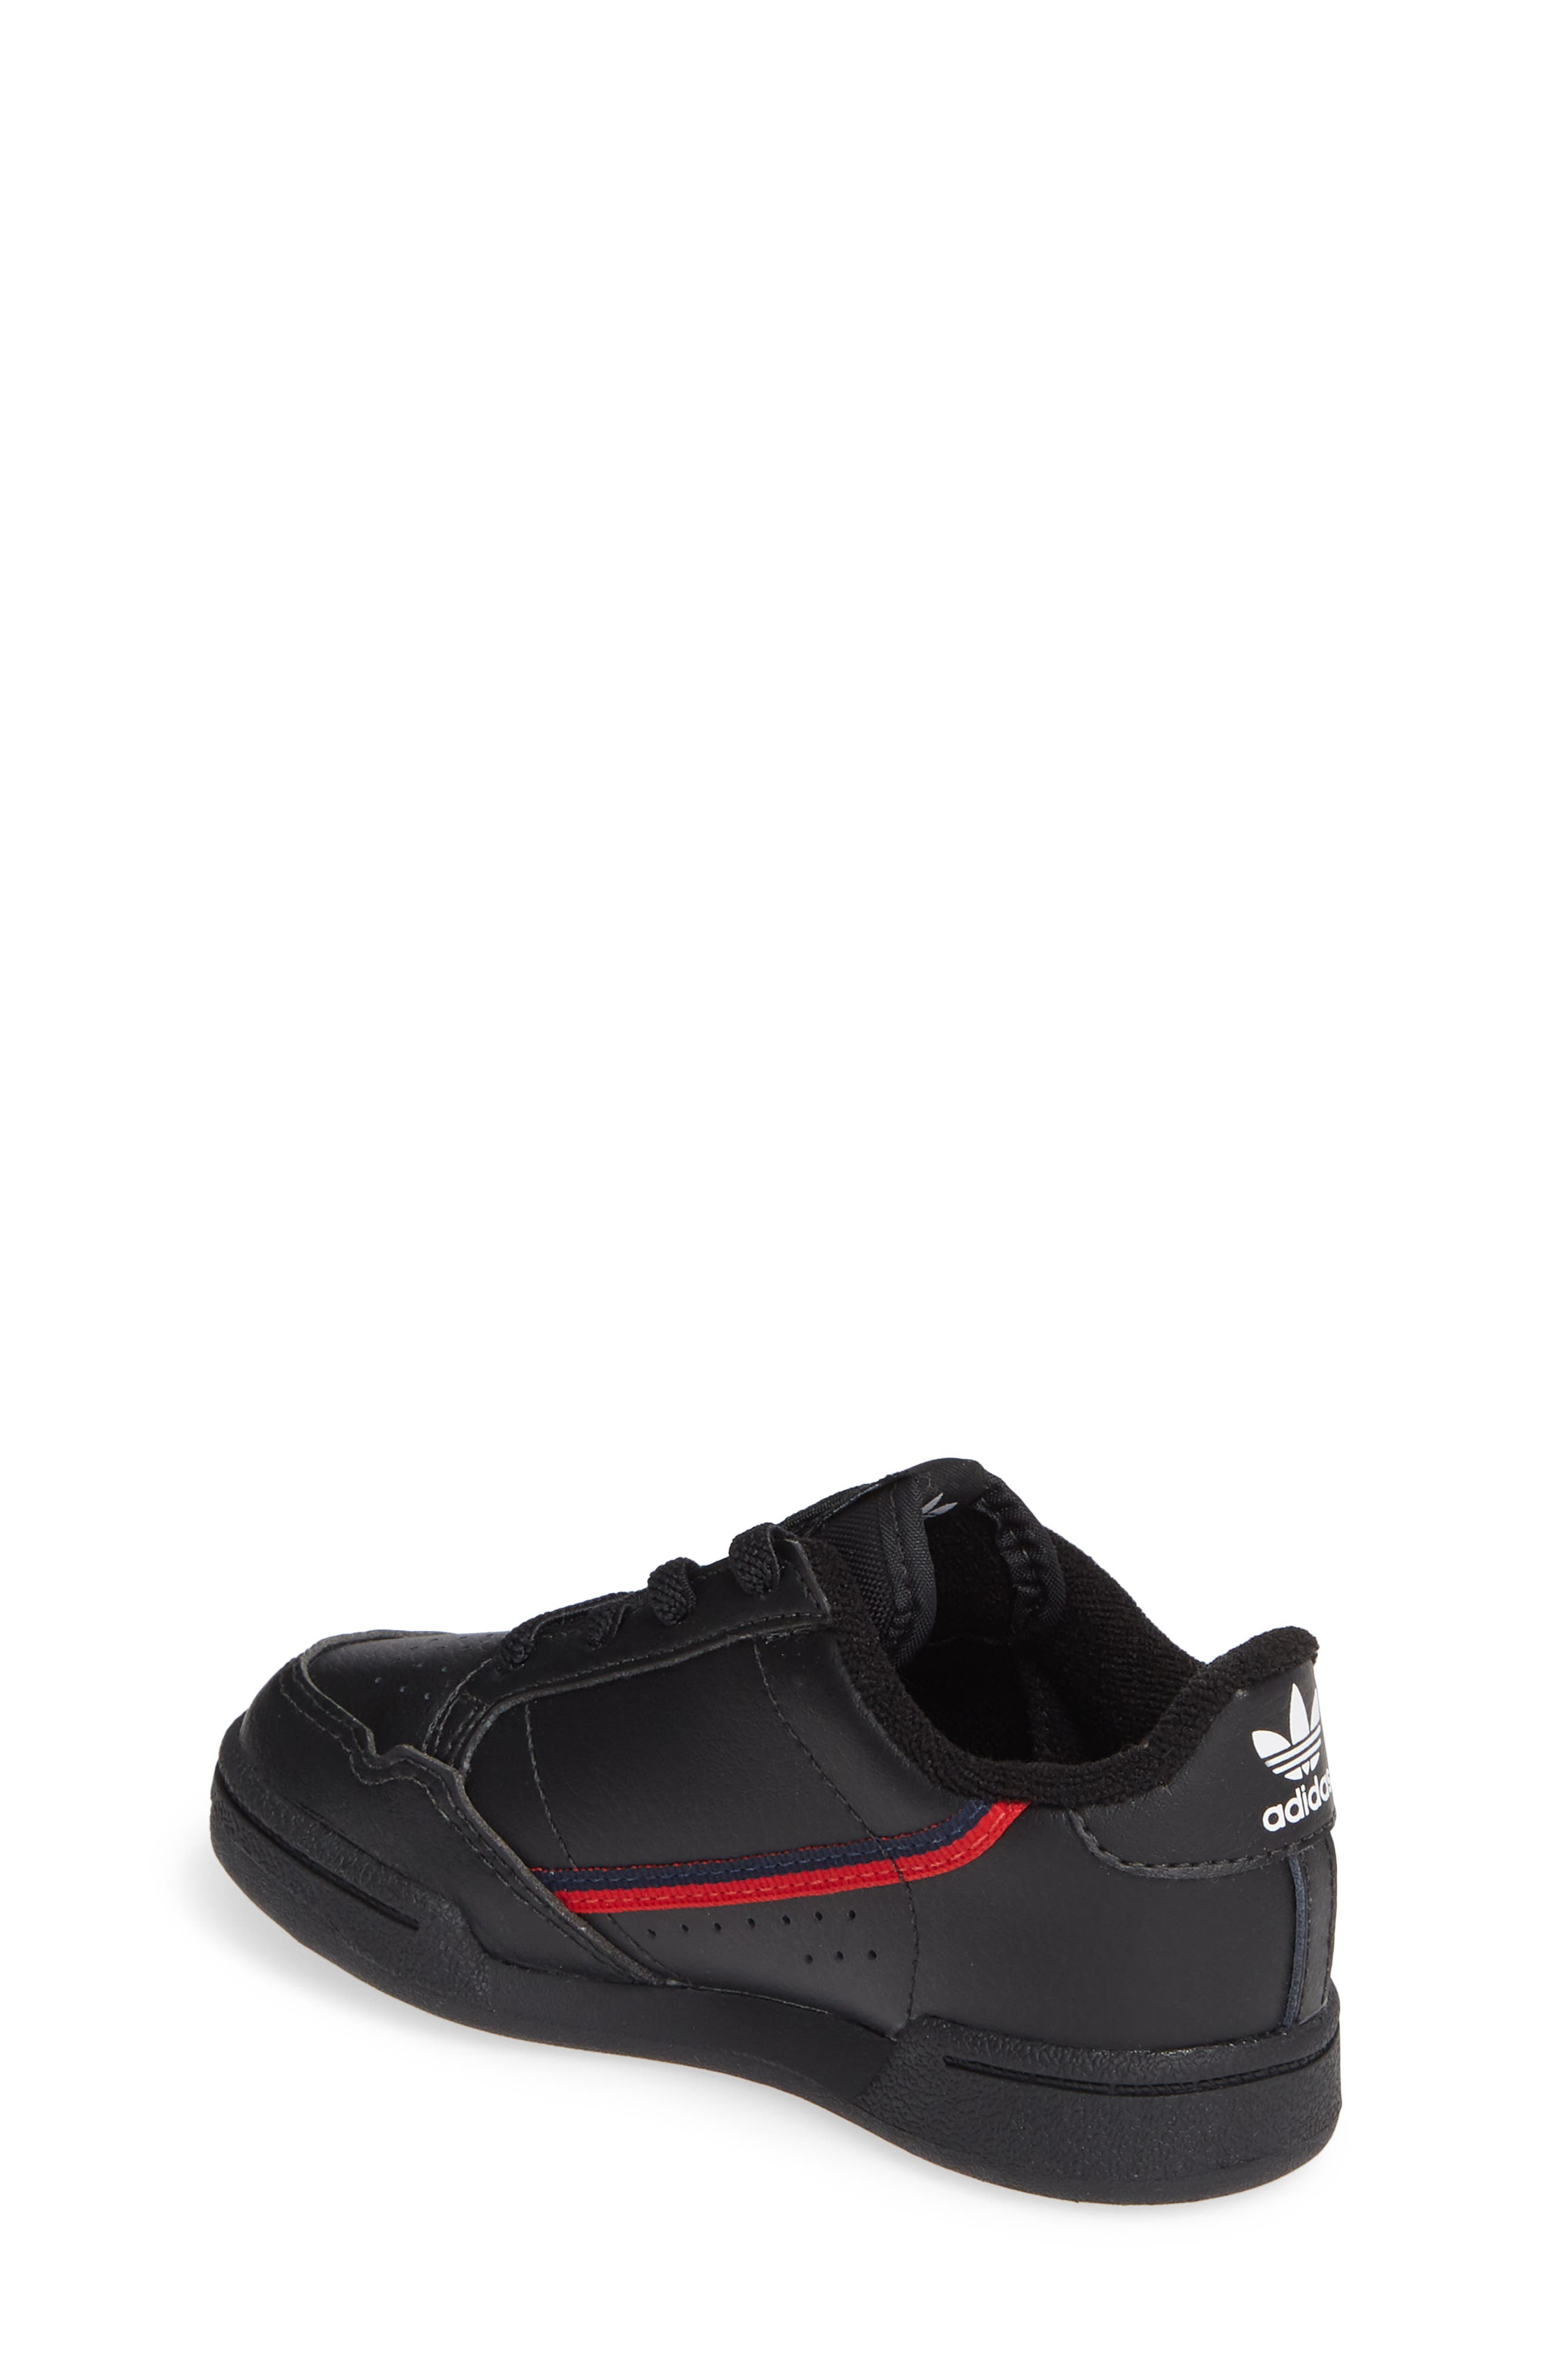 ADIDAS, Continental 80 Sneaker, Alternate thumbnail 2, color, CORE BLACK/ SCARLET/ NAVY